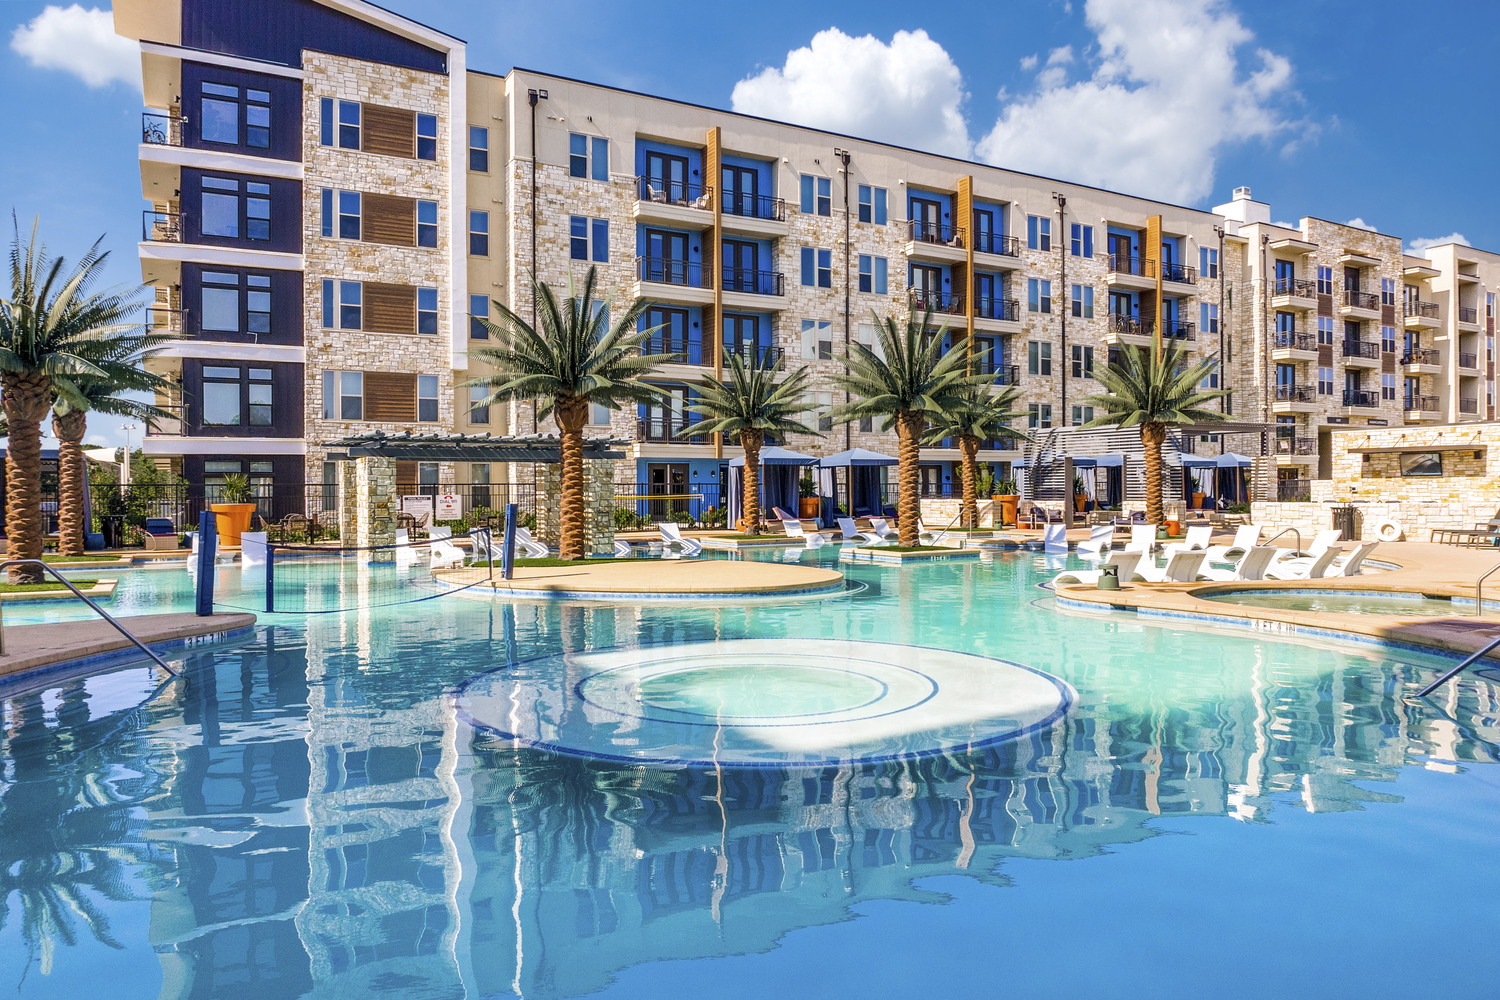 CBG builds Vitruvian West Phase II, a 366-Unit LEED® Silver Apartment Community with Parking Garage in Addison, TX - Image #1